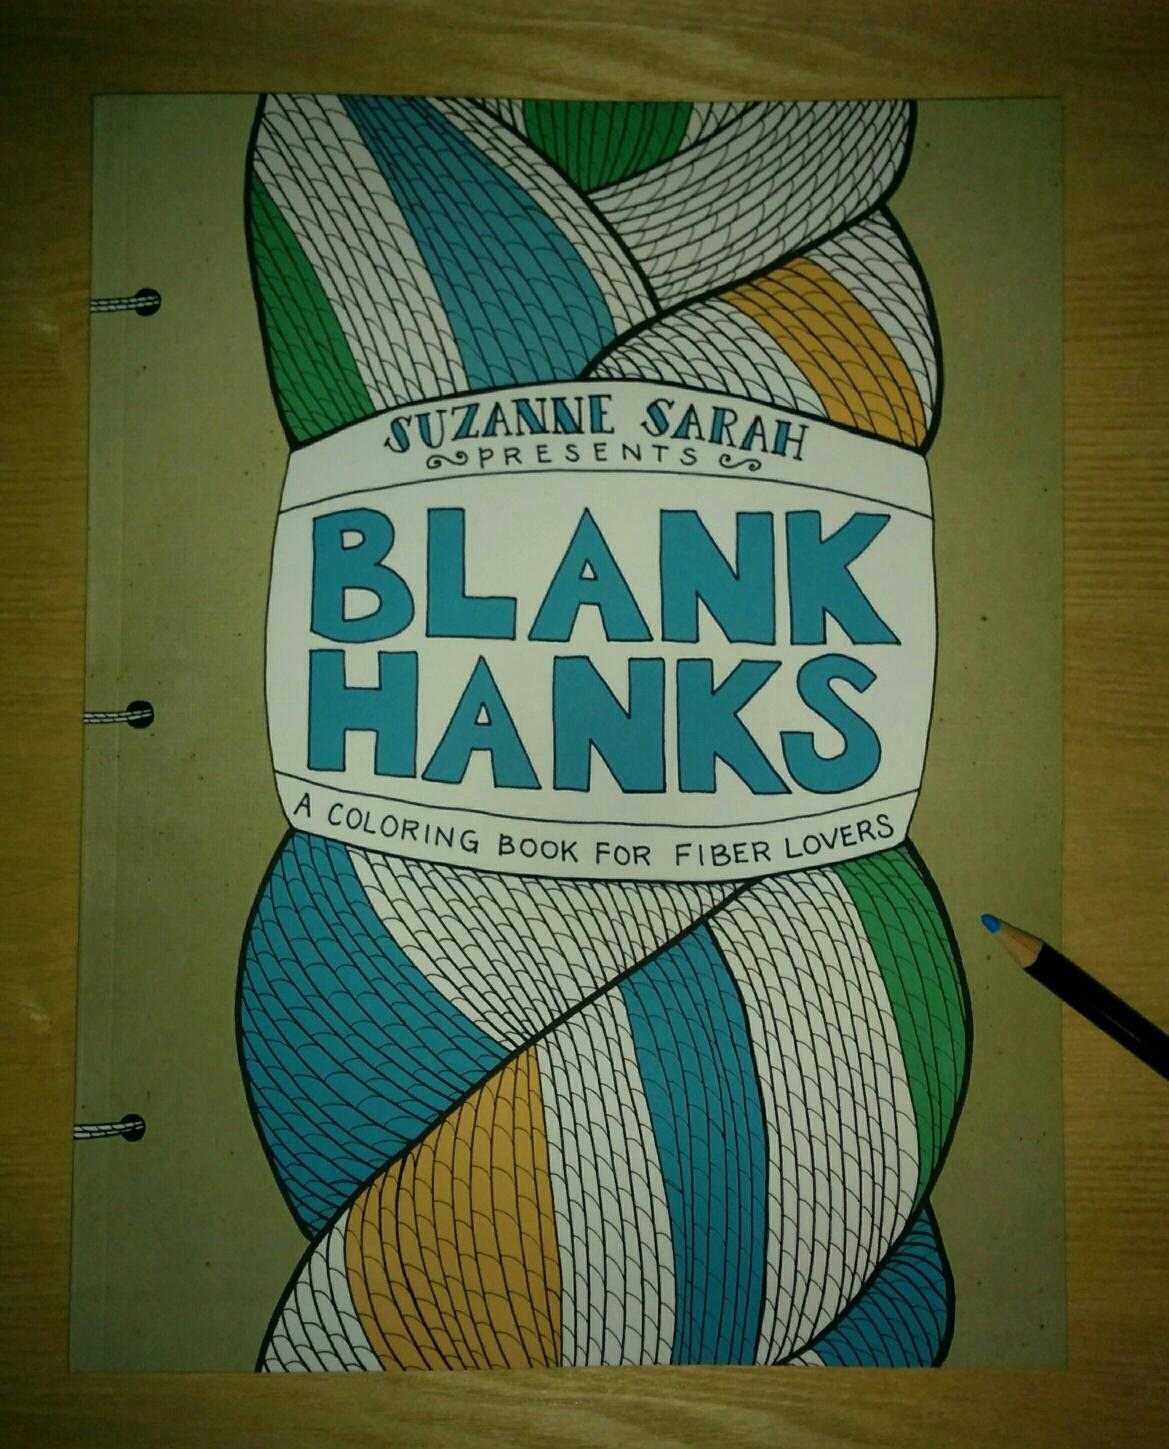 Click to visit Amazon and purchase Blank Hanks